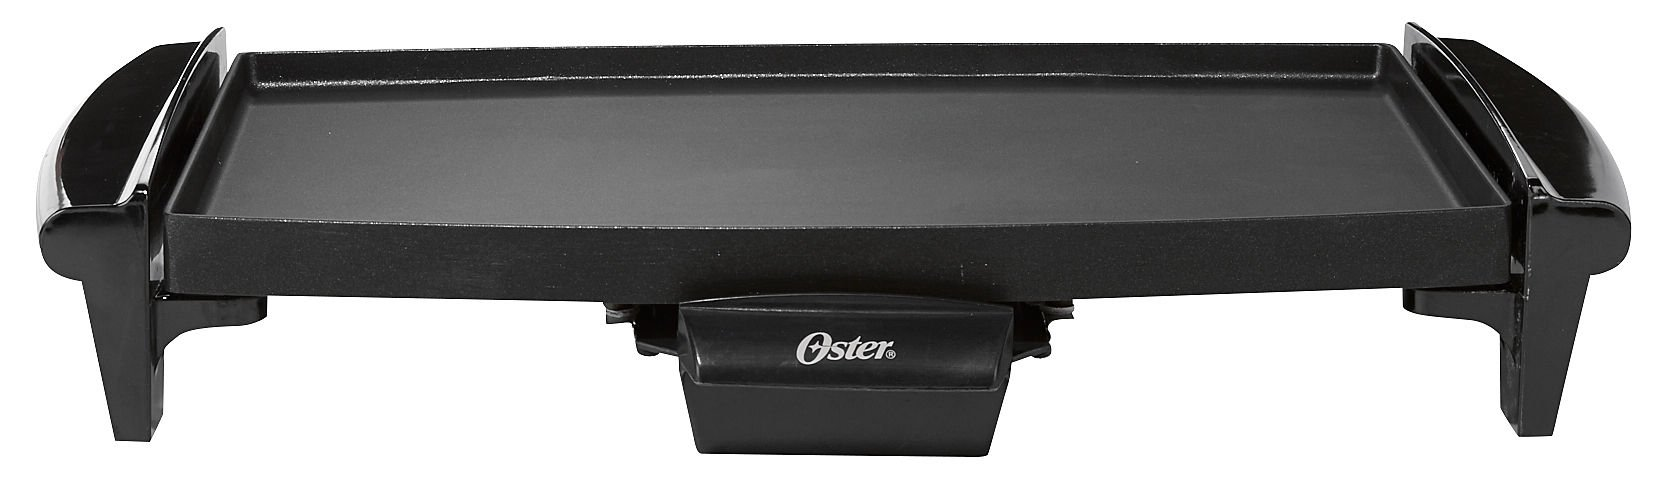 Oster electric Griddle